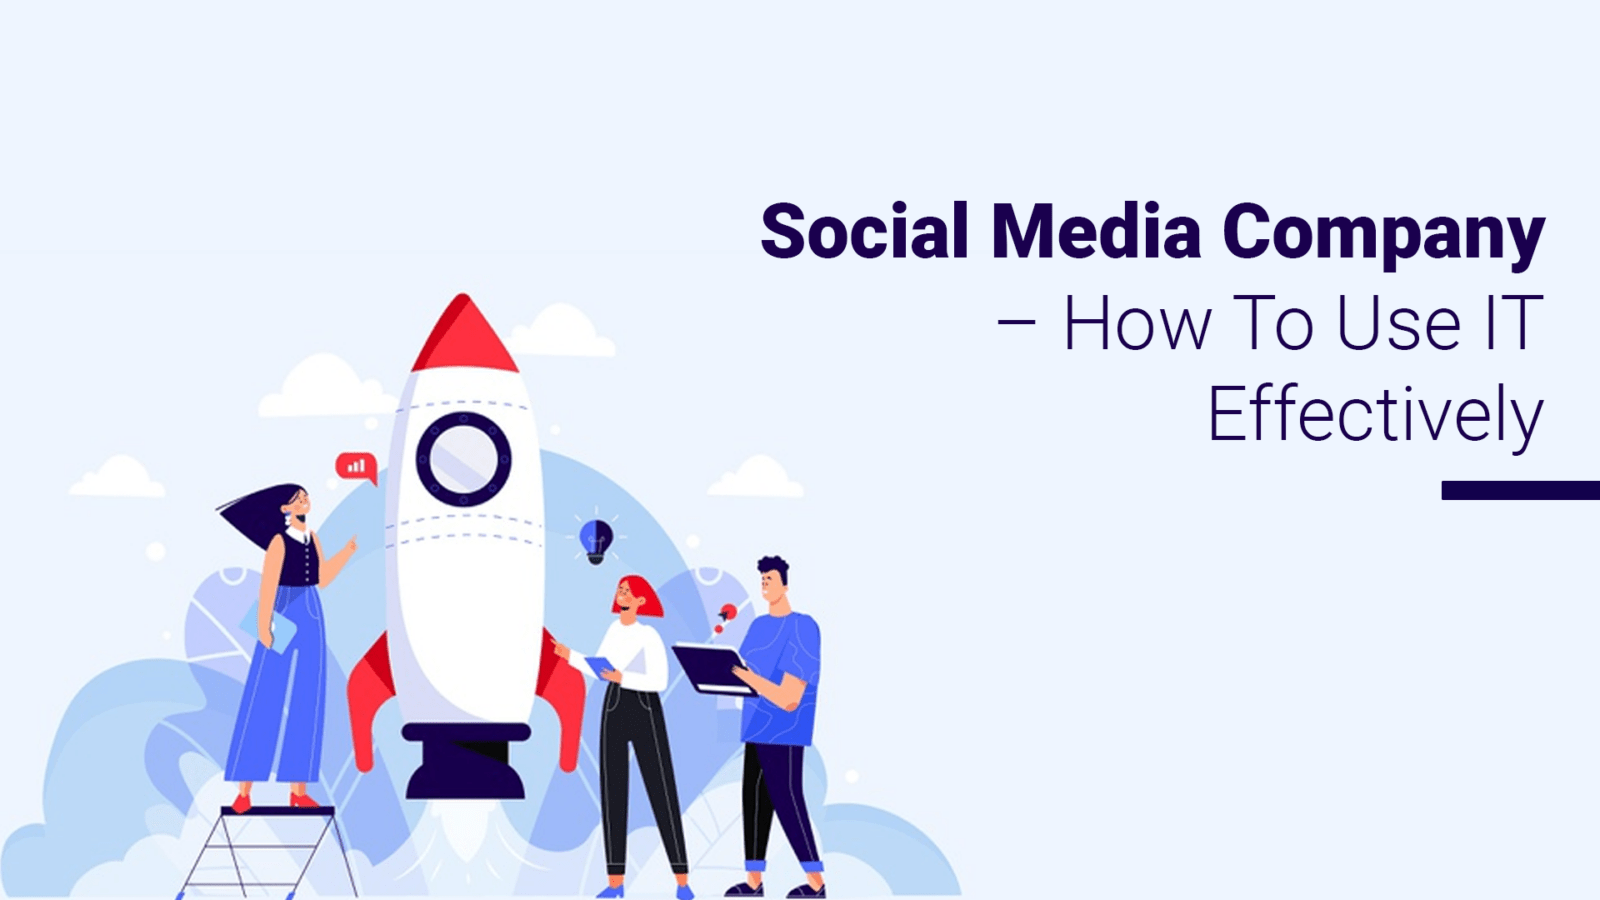 Social Media Company – How To Use IT Effectively